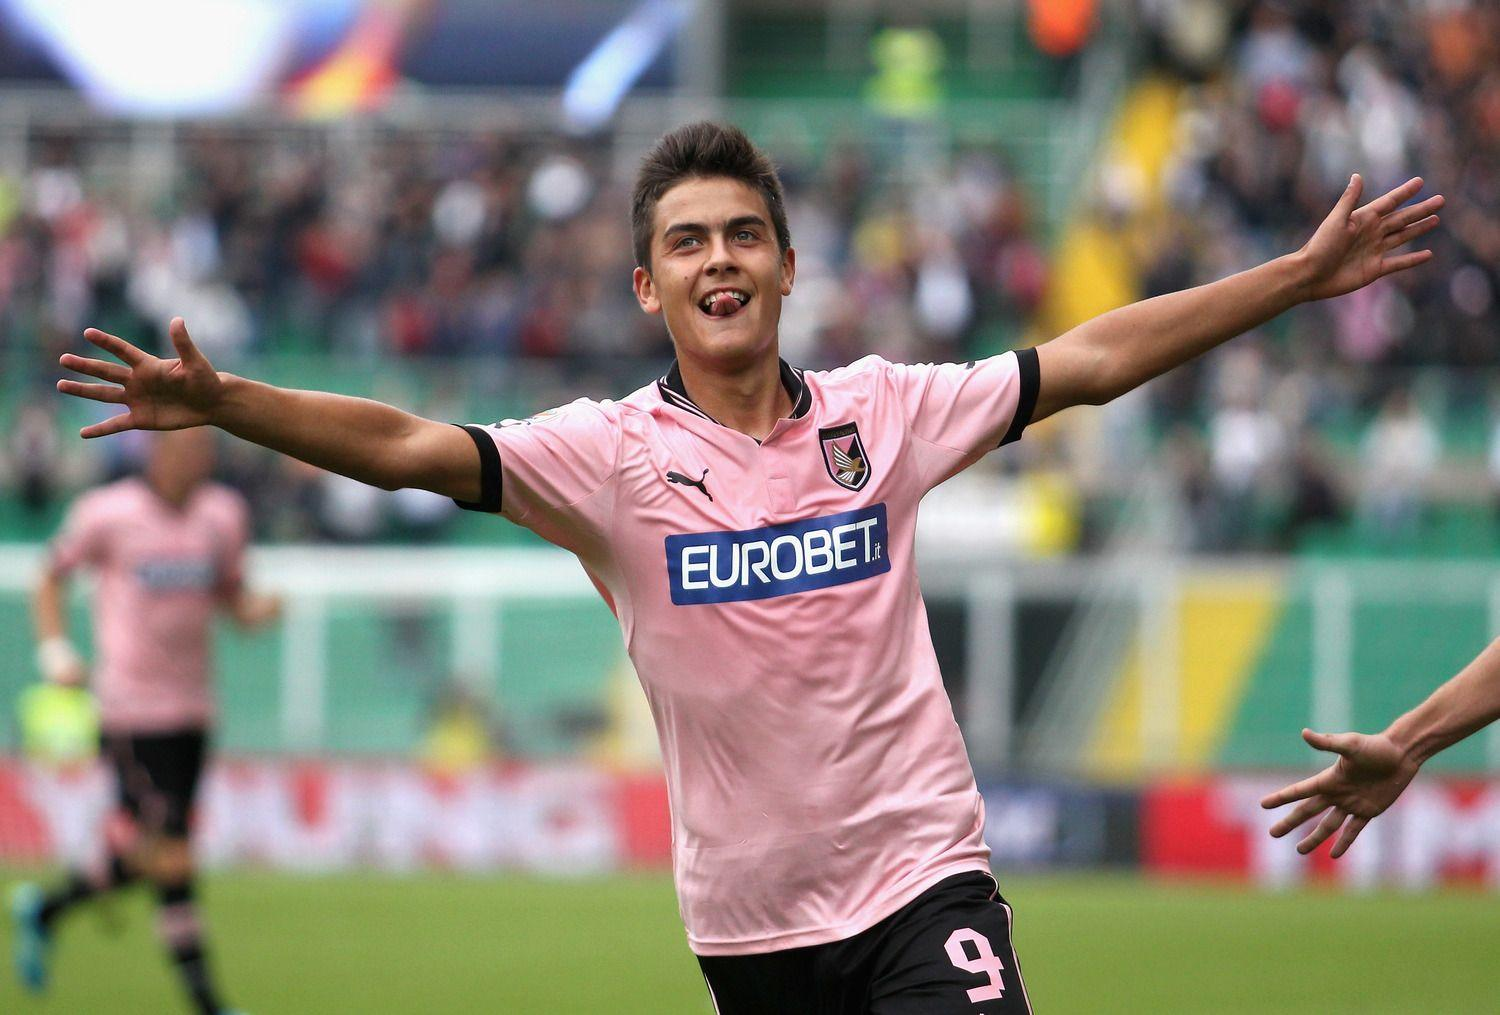 Paulo Dybala - A future great? - Proven Quality